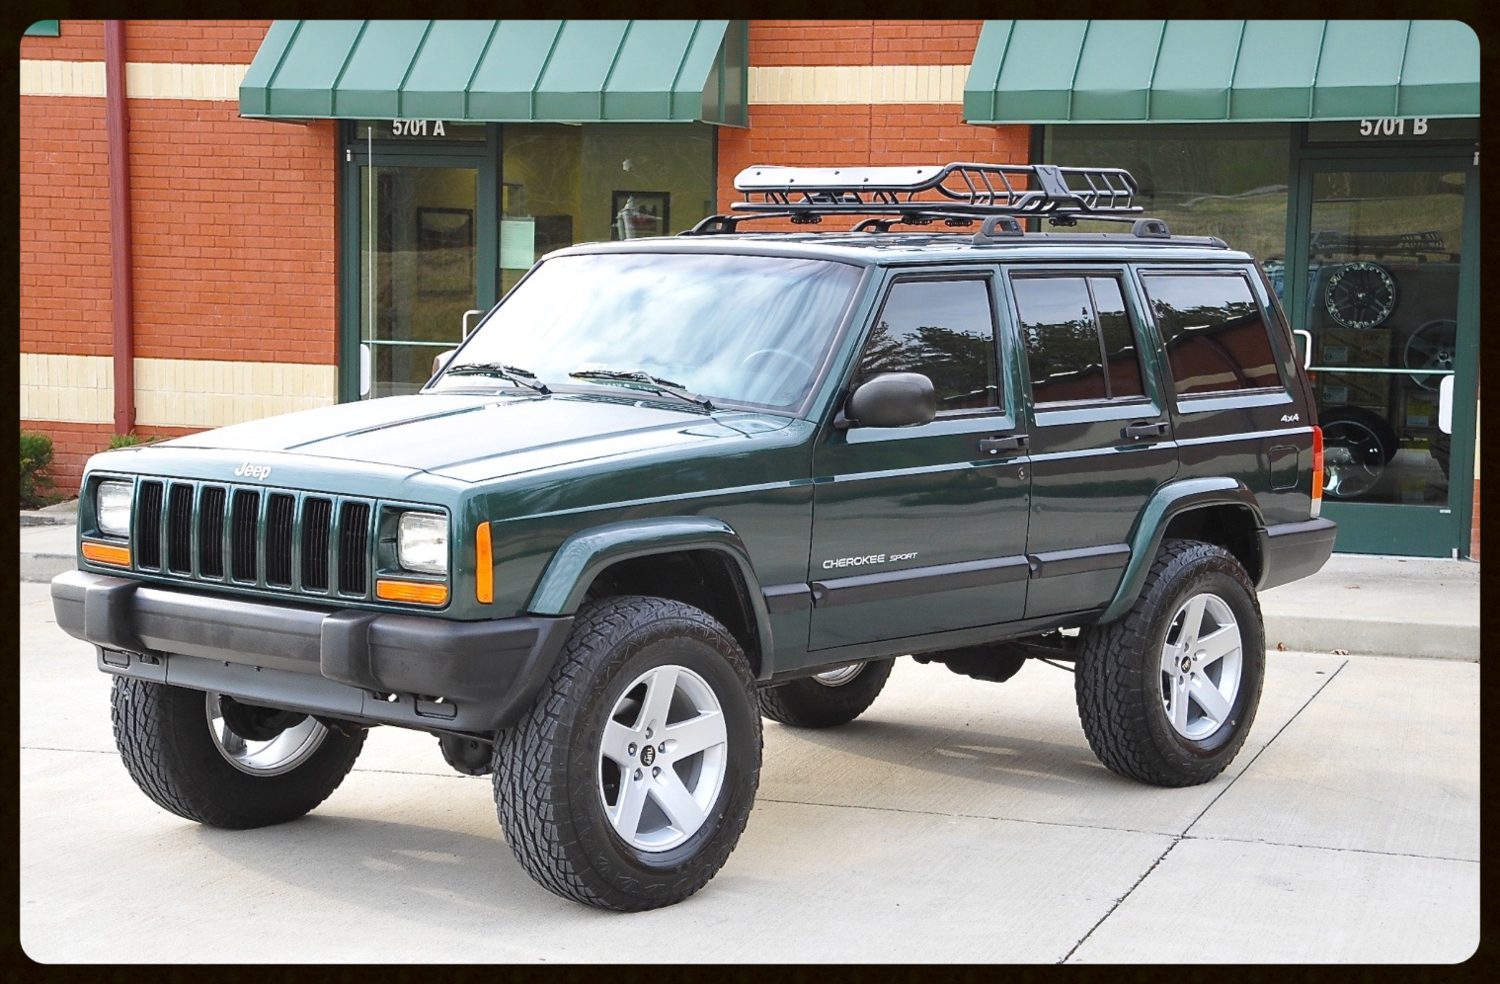 Lifted cherokee sport xj for sale lifted jeep cherokee built jeep cherokee davis